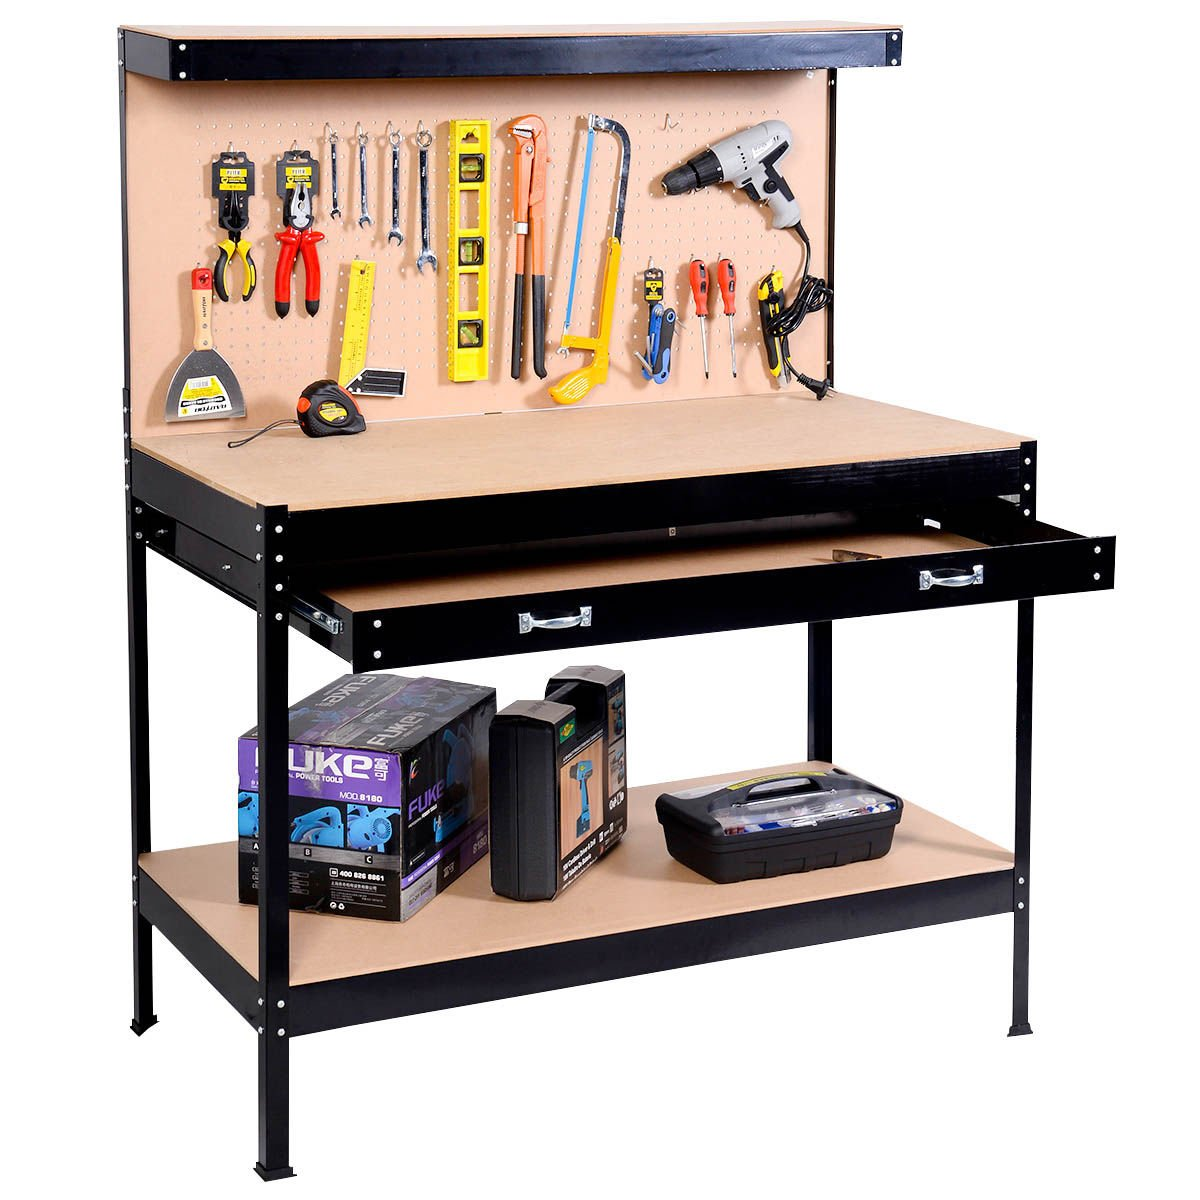 Work Bench Tool Storage Steel Frame Workshop Table W/ Drawer & Peg Board by Allblessings (Image #1)